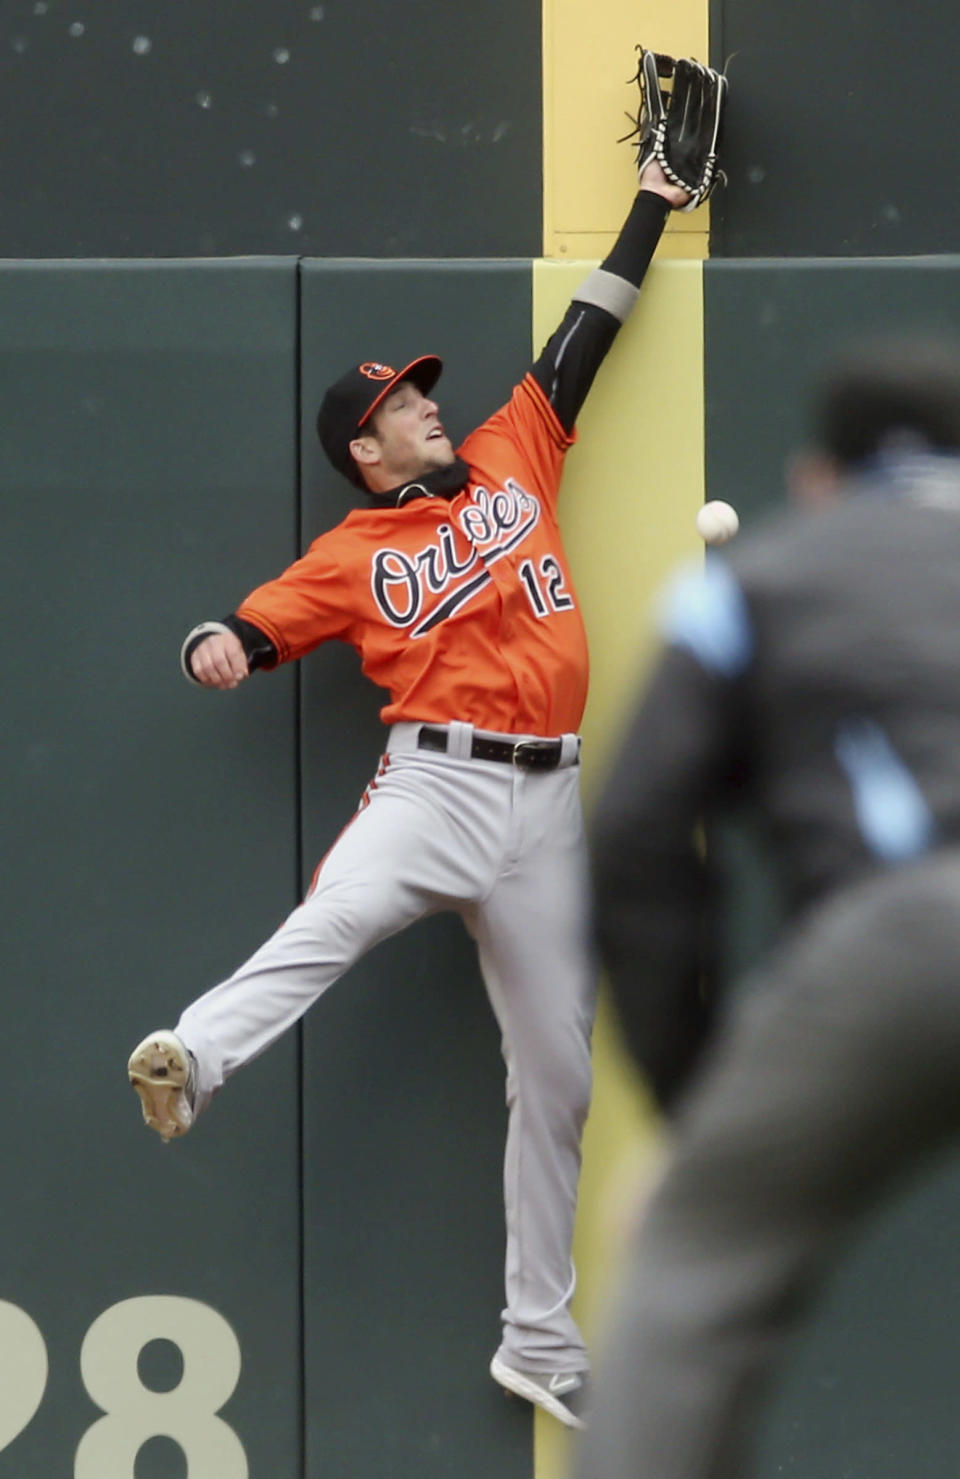 Baltimore Orioles' Trey Mancini tries but fails in his attempt to catch a foul ball off the bat of Minnesota Twins' Jorge Polanco in the third inning of a baseball game Saturday, April 27, 2019, in Minneapolis. (AP Photo/Jim Mone)